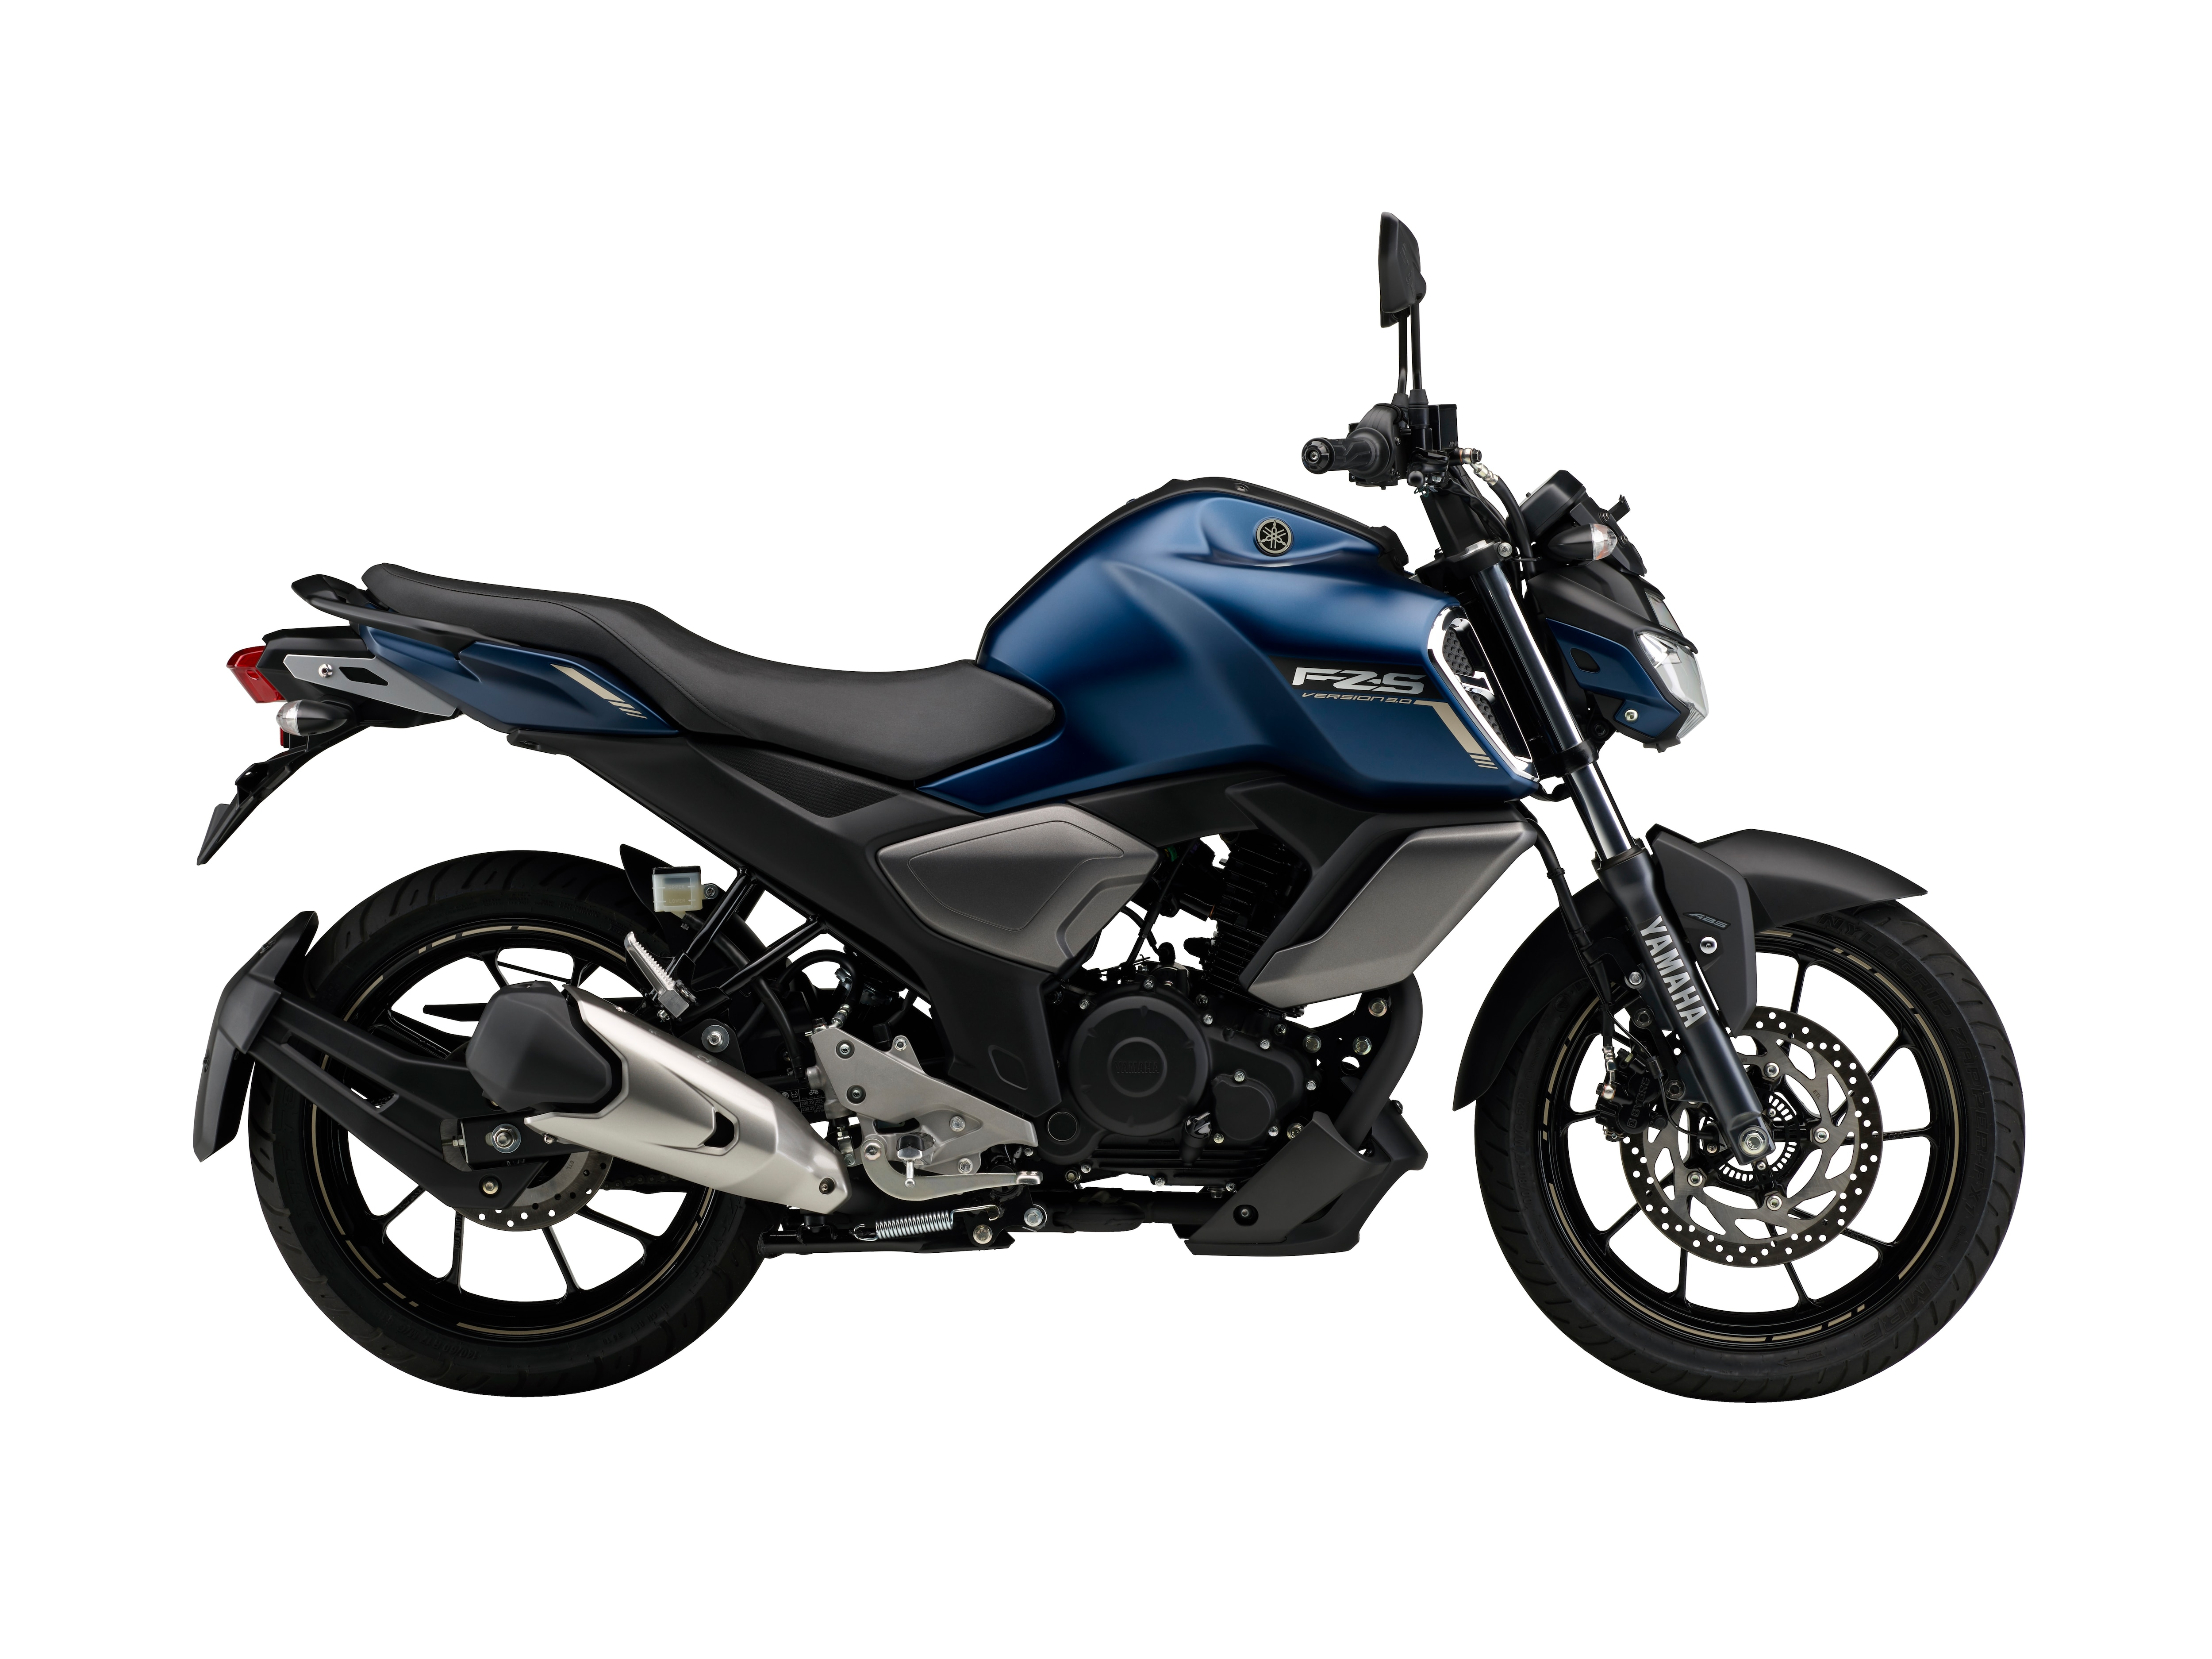 2019 Yamaha FZ Fi And FZ-S Fi Version 3.0: All You Need To Know